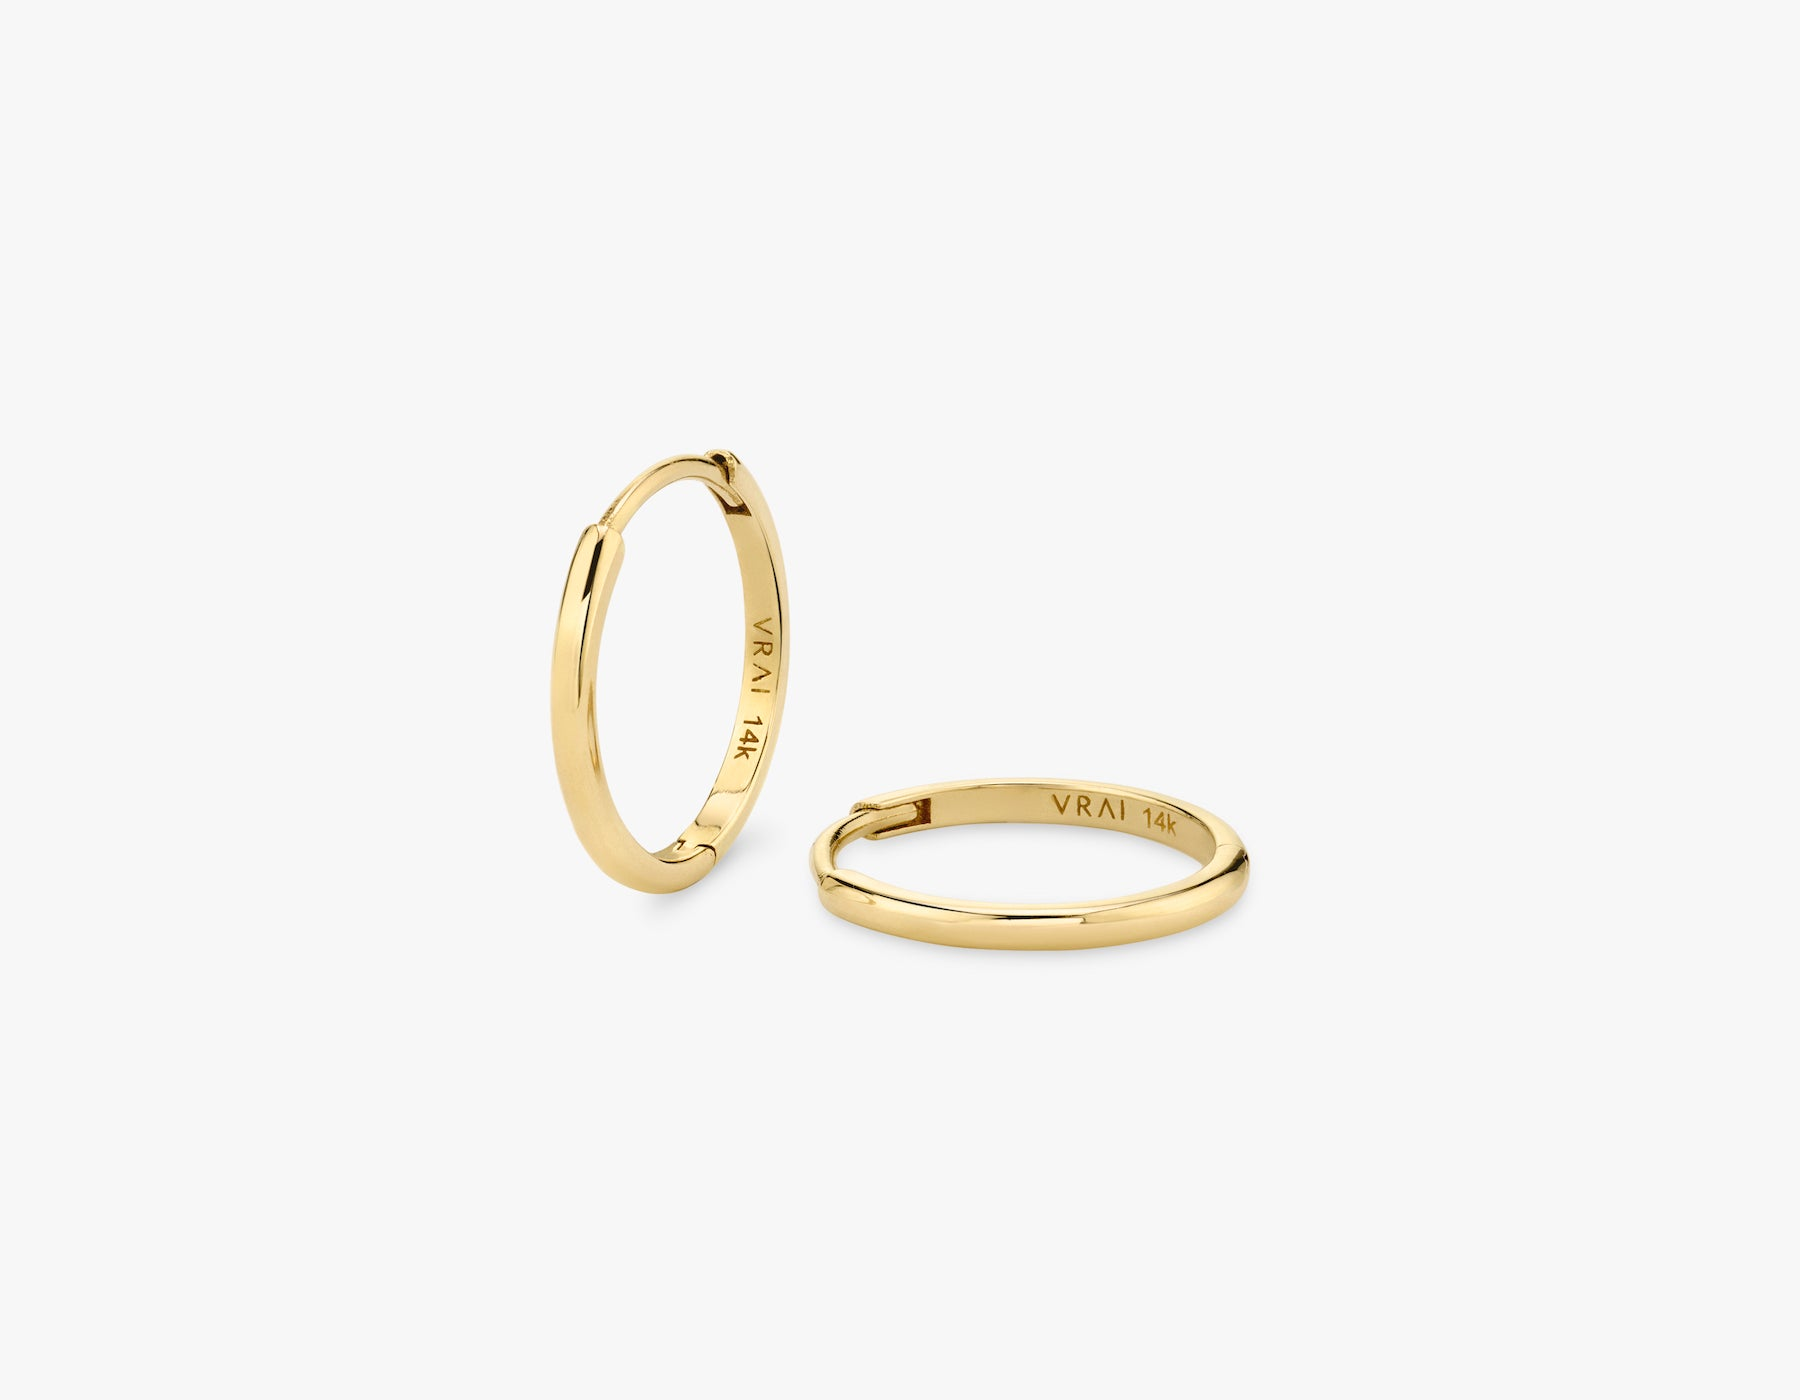 Vrai 14k solid gold simple minimalist  Huggie Hoops earrings, 14K Yellow Gold